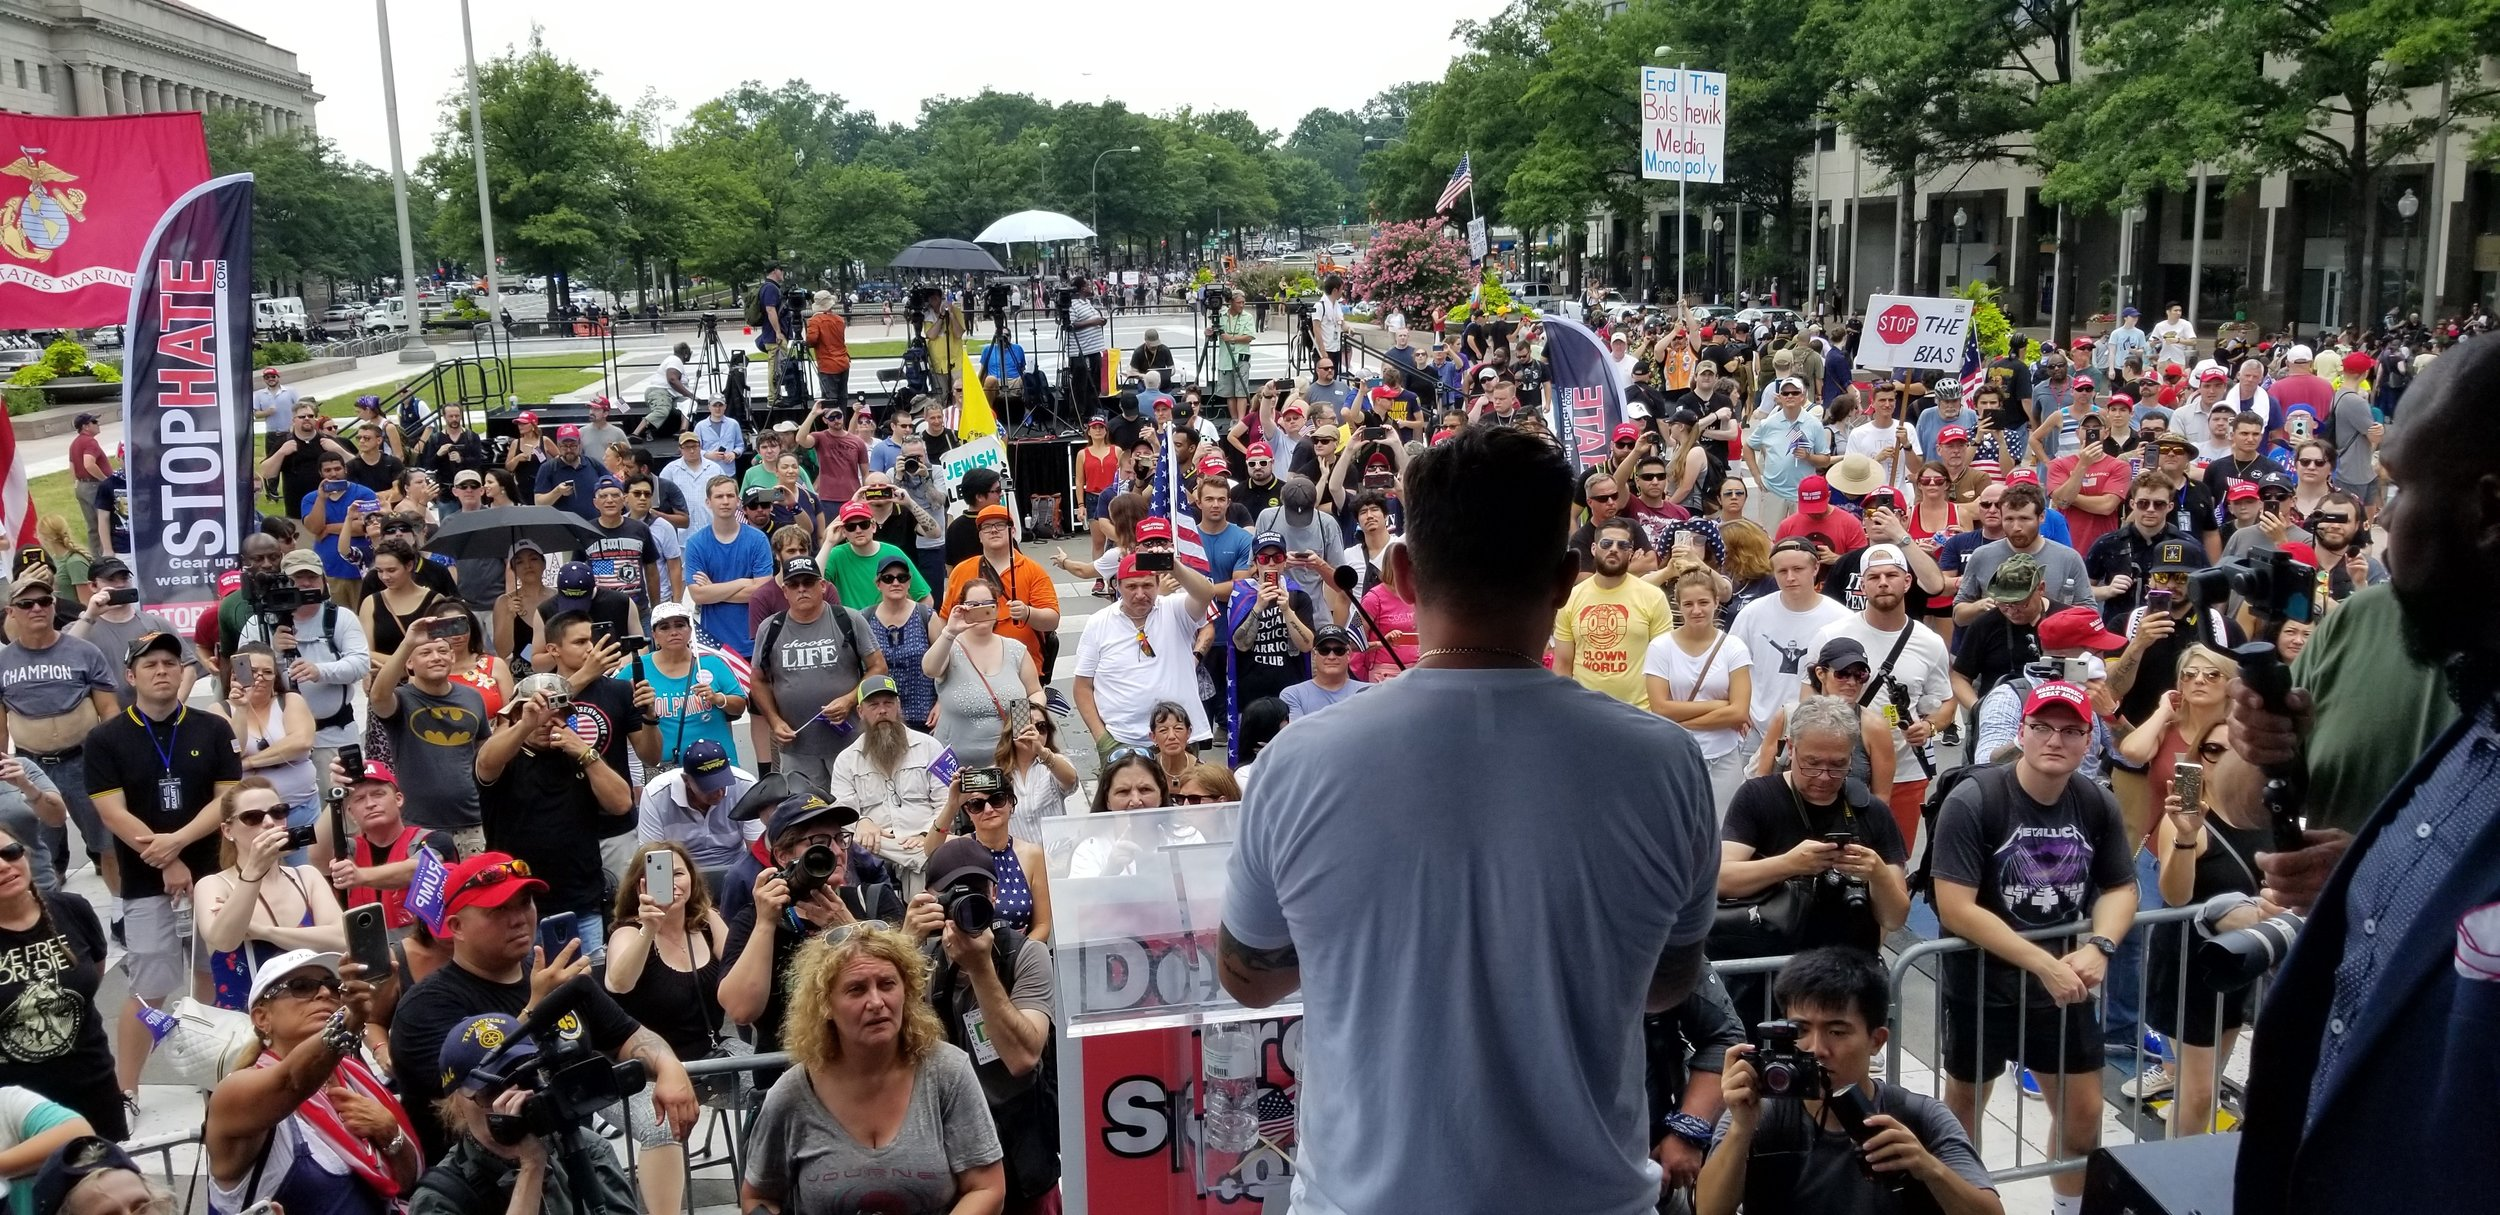 large-crowd-at-stop-hate-demand-free-speech-rally-in-dc.jpg